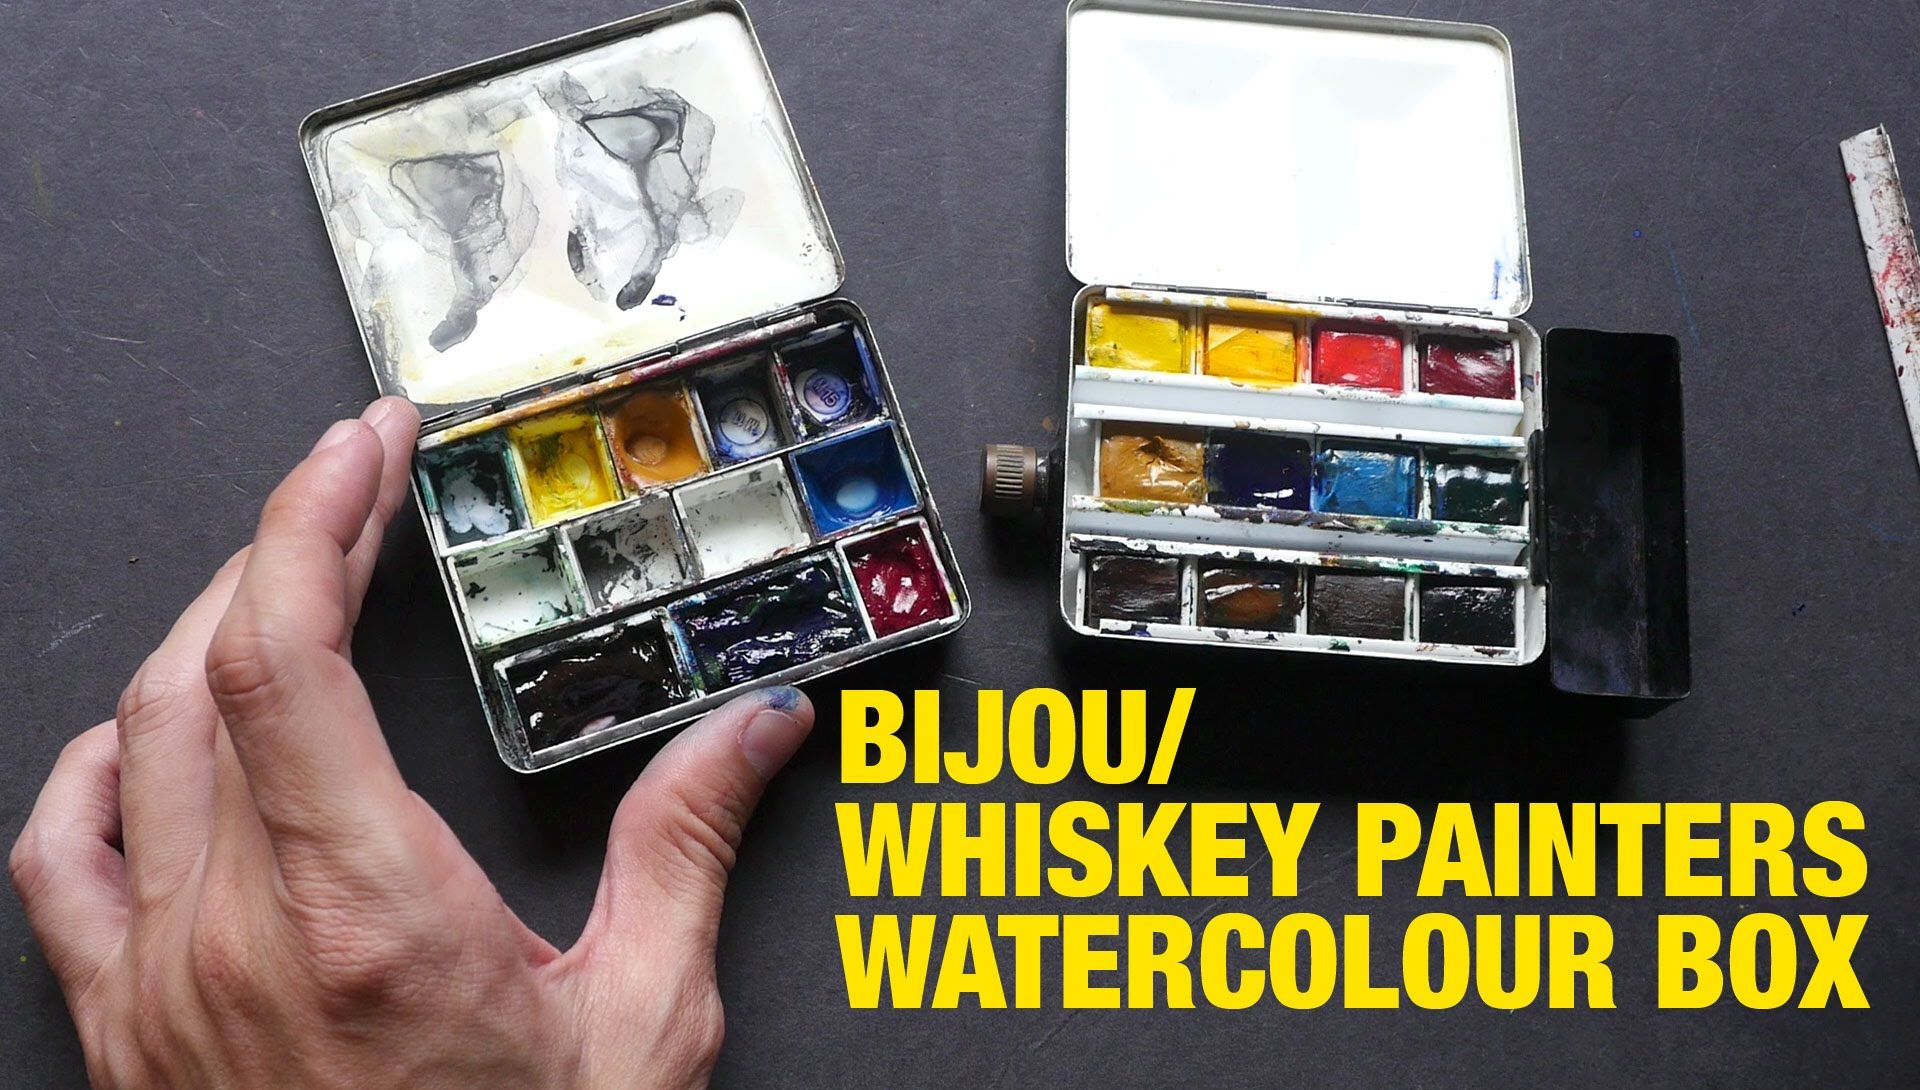 Review Bijou Or Whiskey Painters Watercolor Palette Box